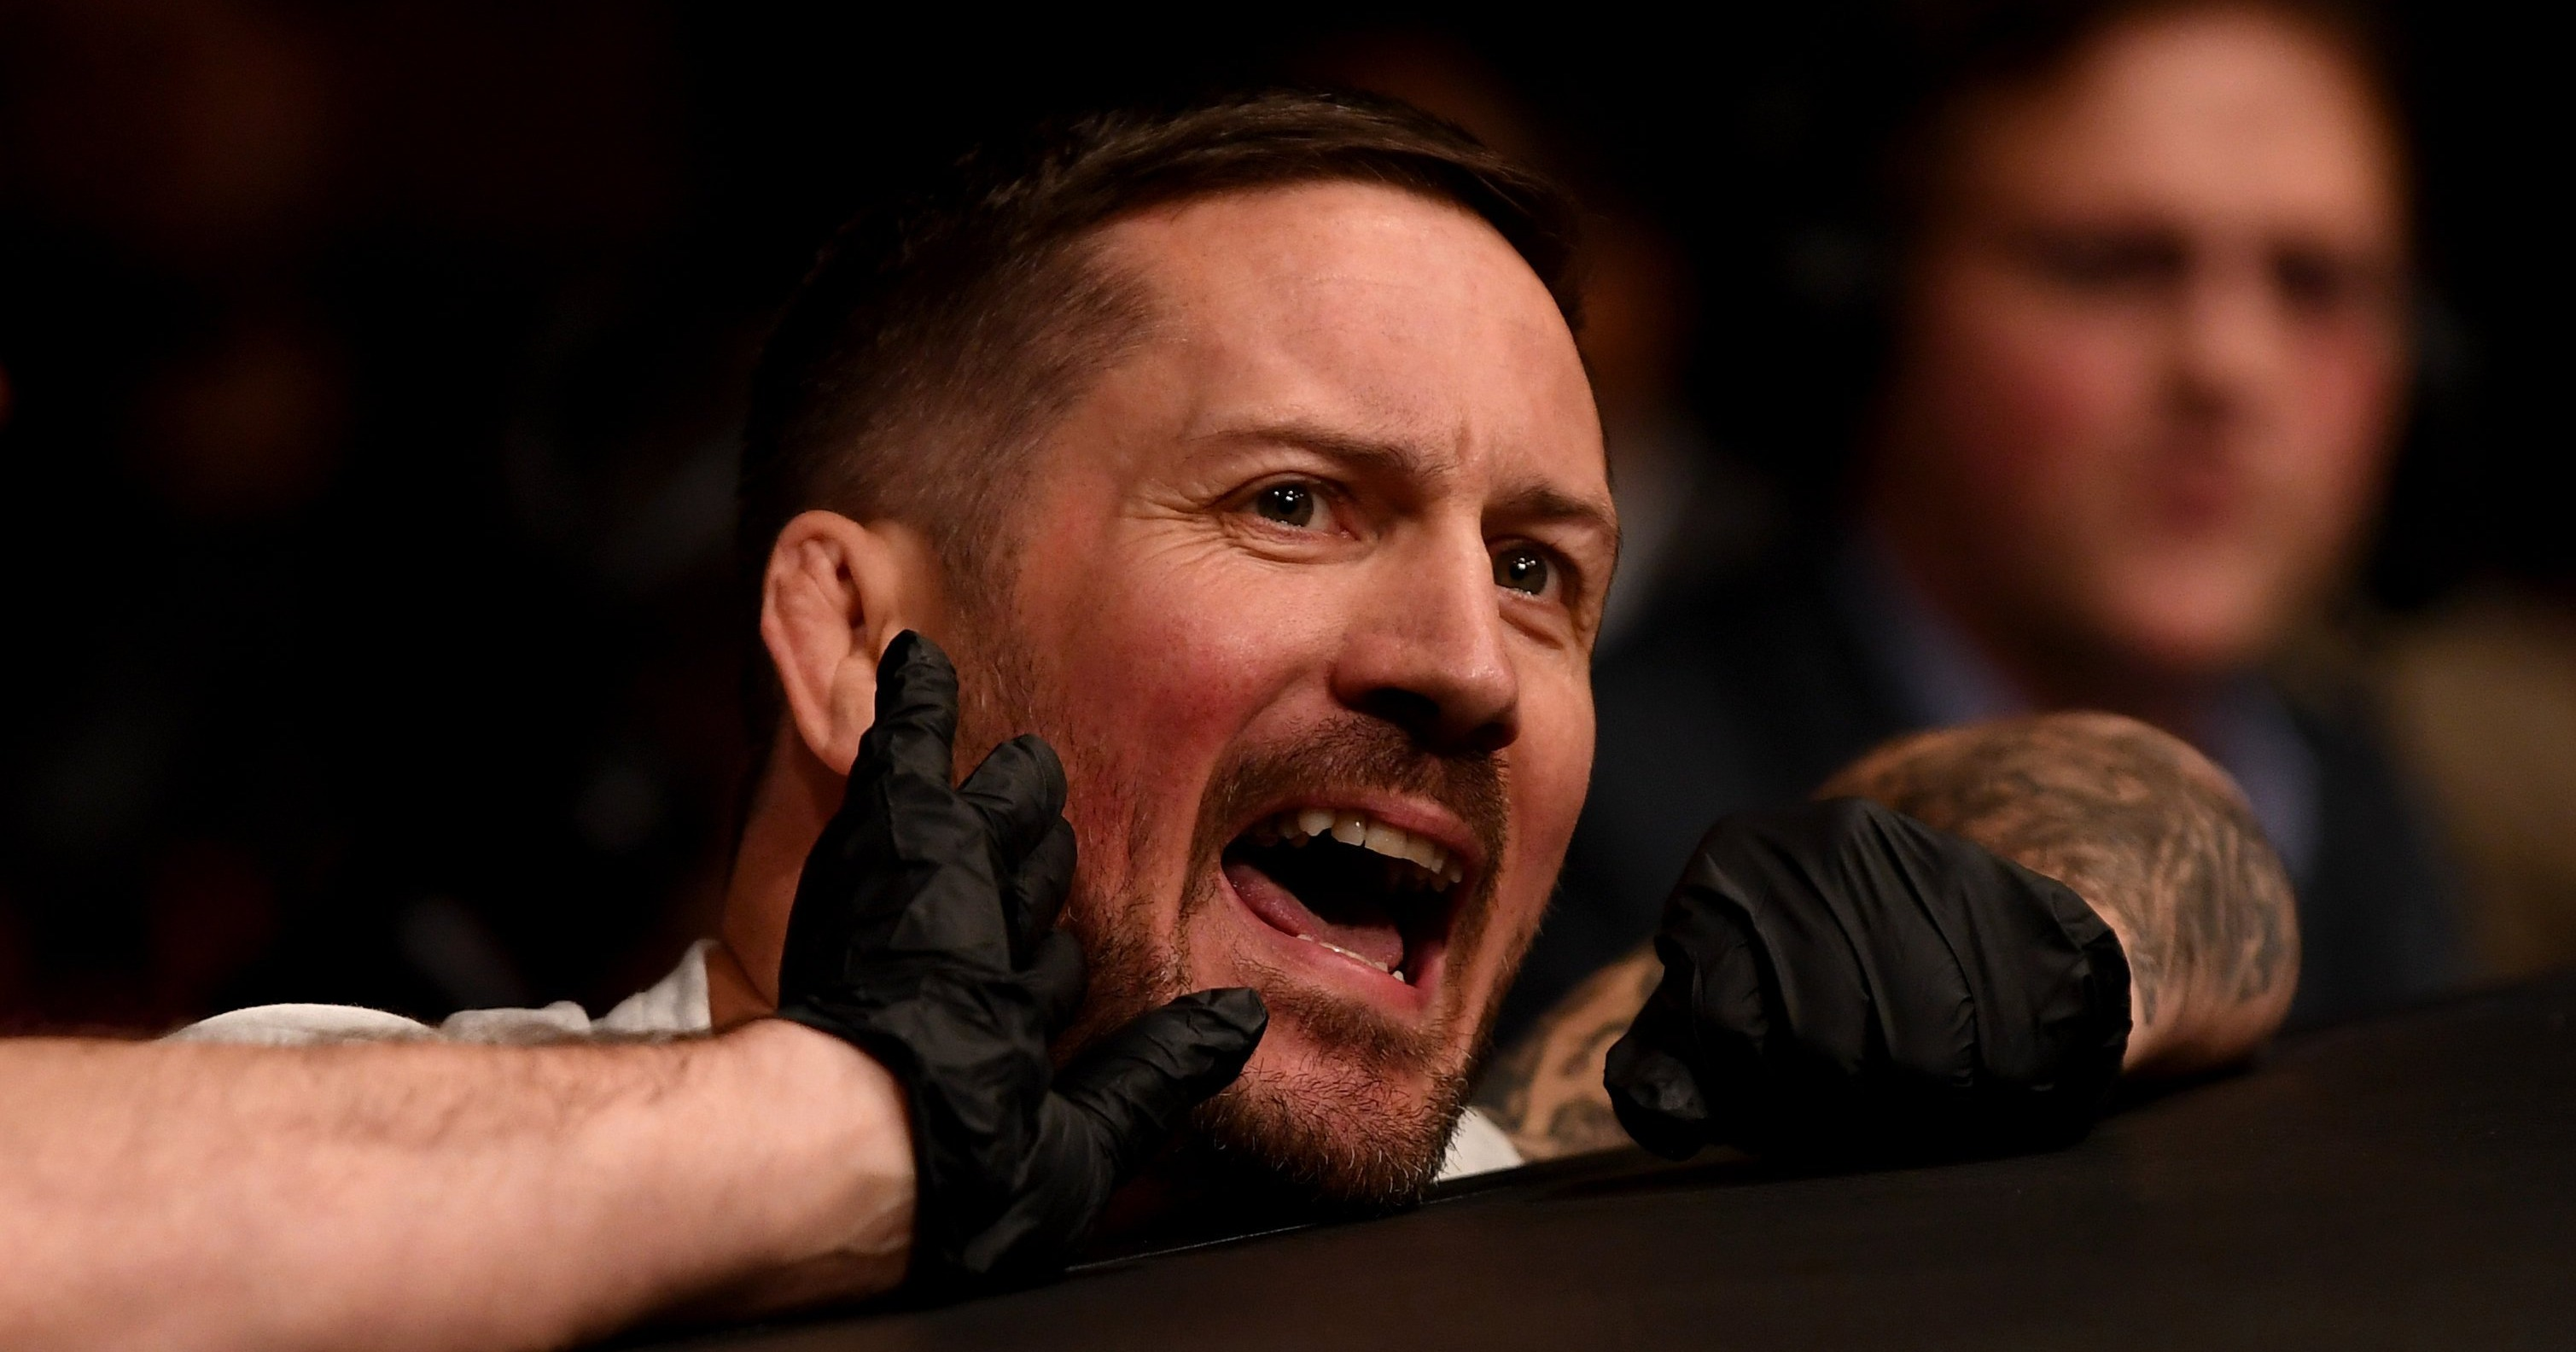 Conor McGregor set to fight Poirier at welterweight as coach John Kavanagh shares 'real joy' at watching him train